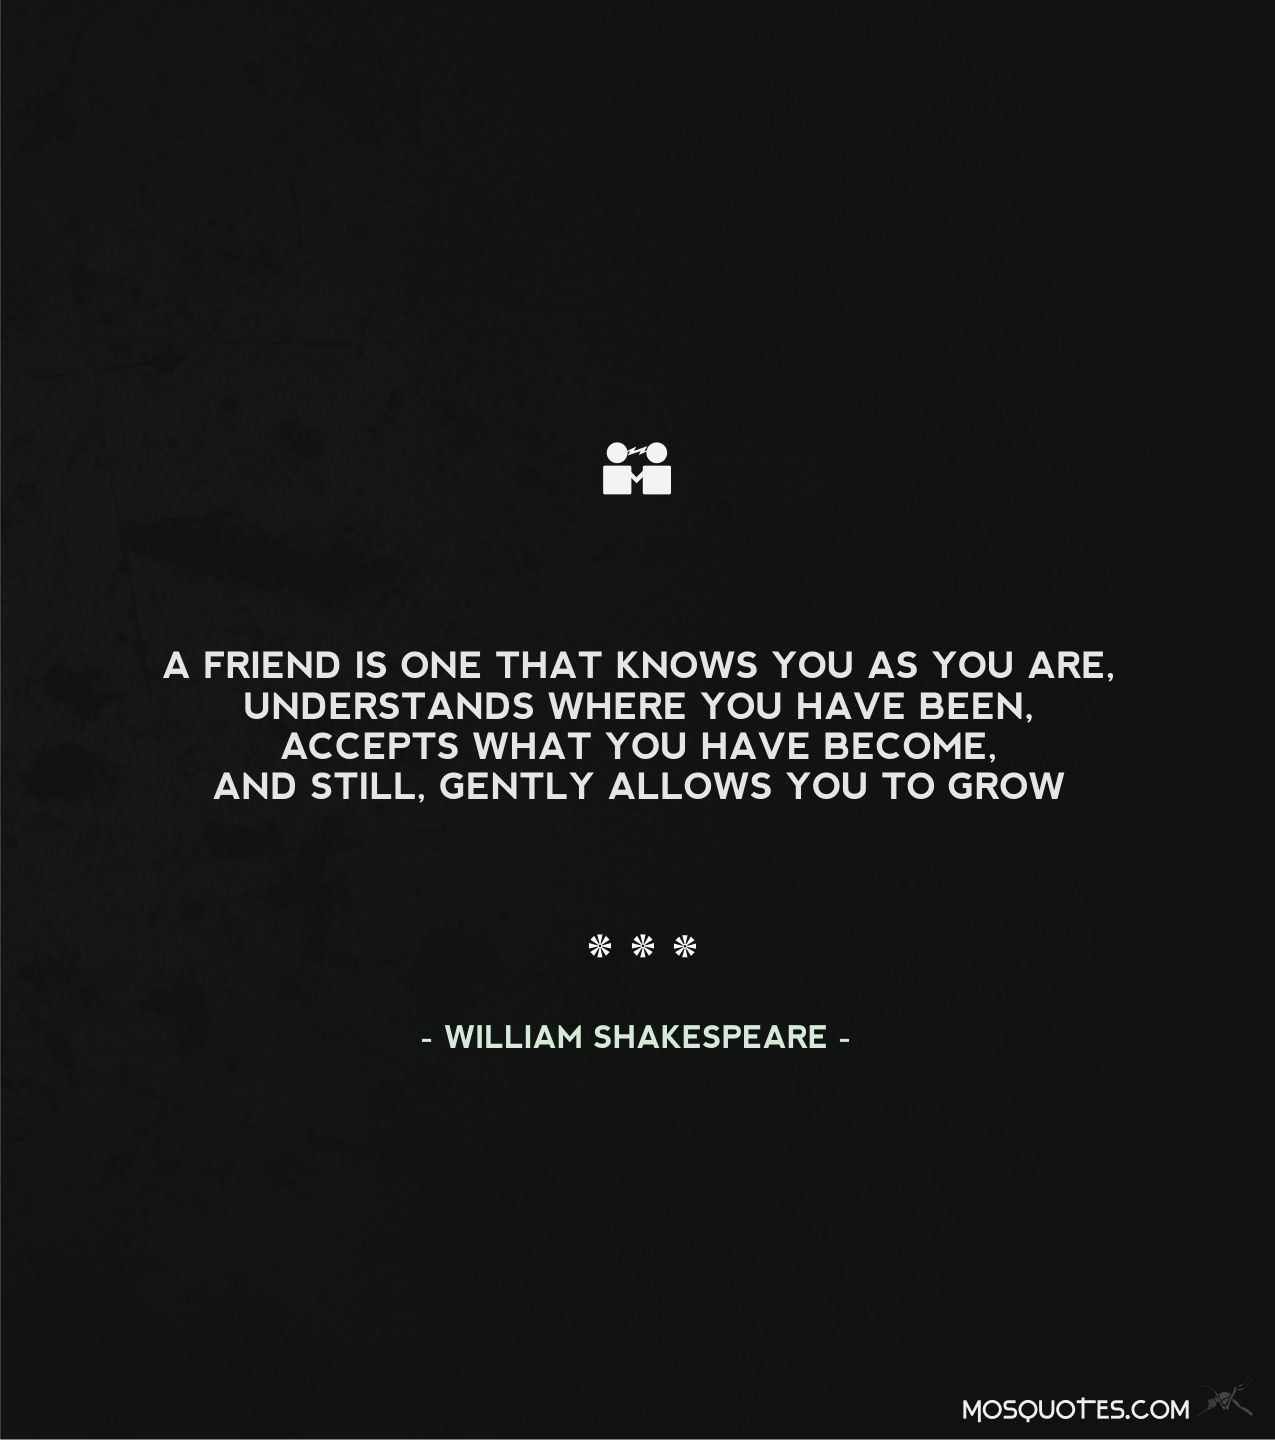 Shakespeare Quotes About Friendship Famous Quotes About Friendship A Friend Is One That Knows You As